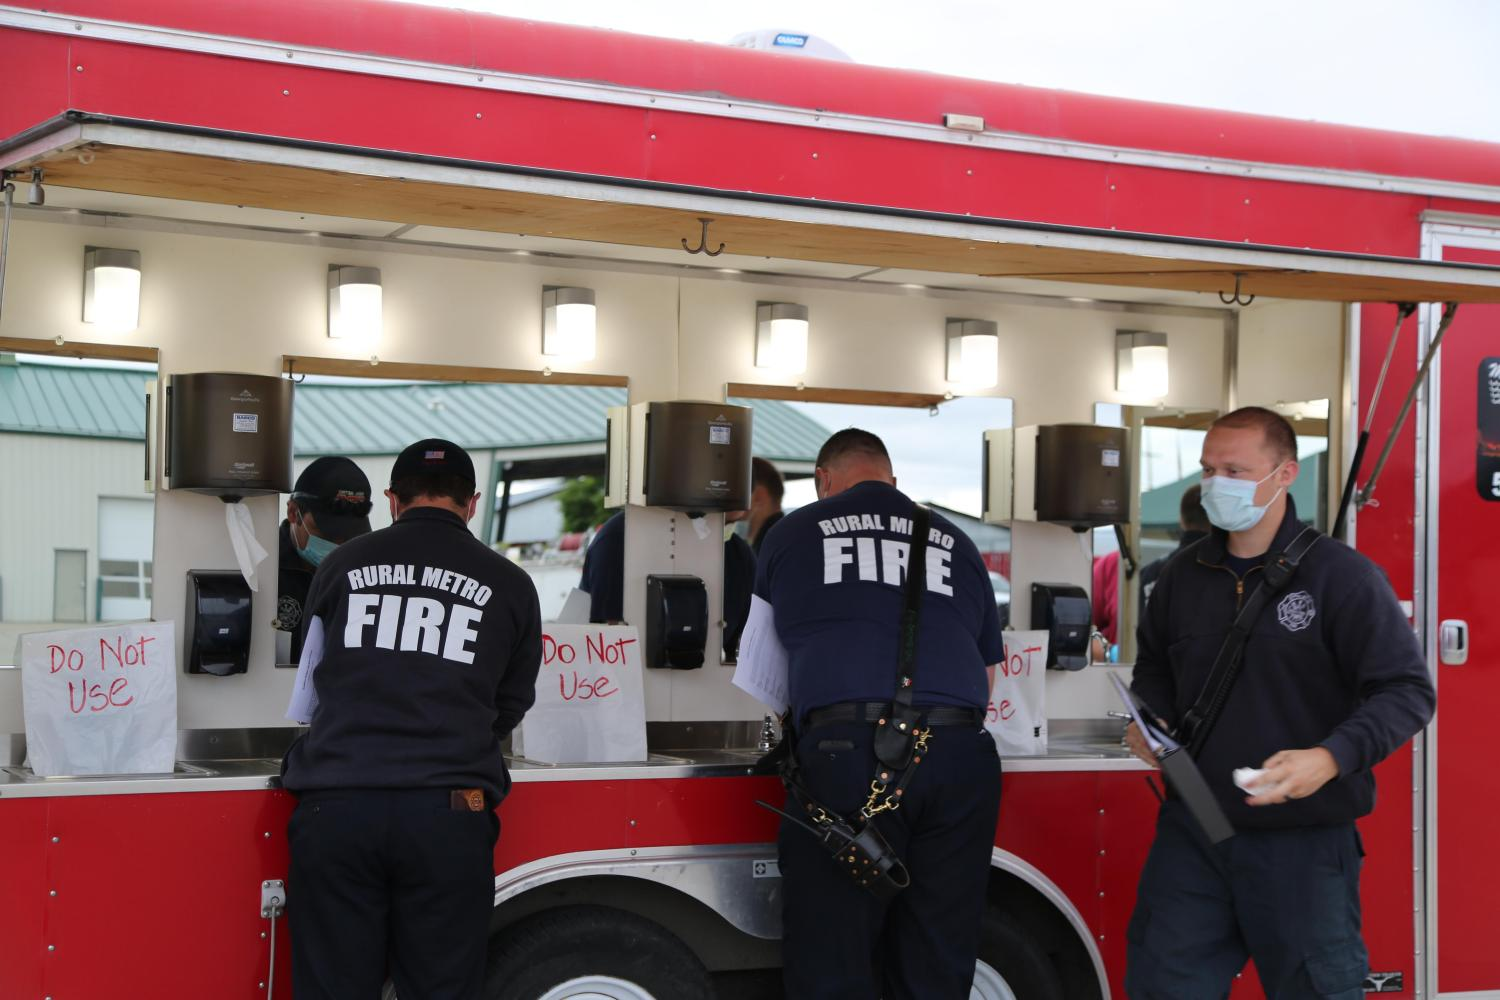 Firefighters use a hand-washing station with socially distanced sinks at a training event in June, 2020.